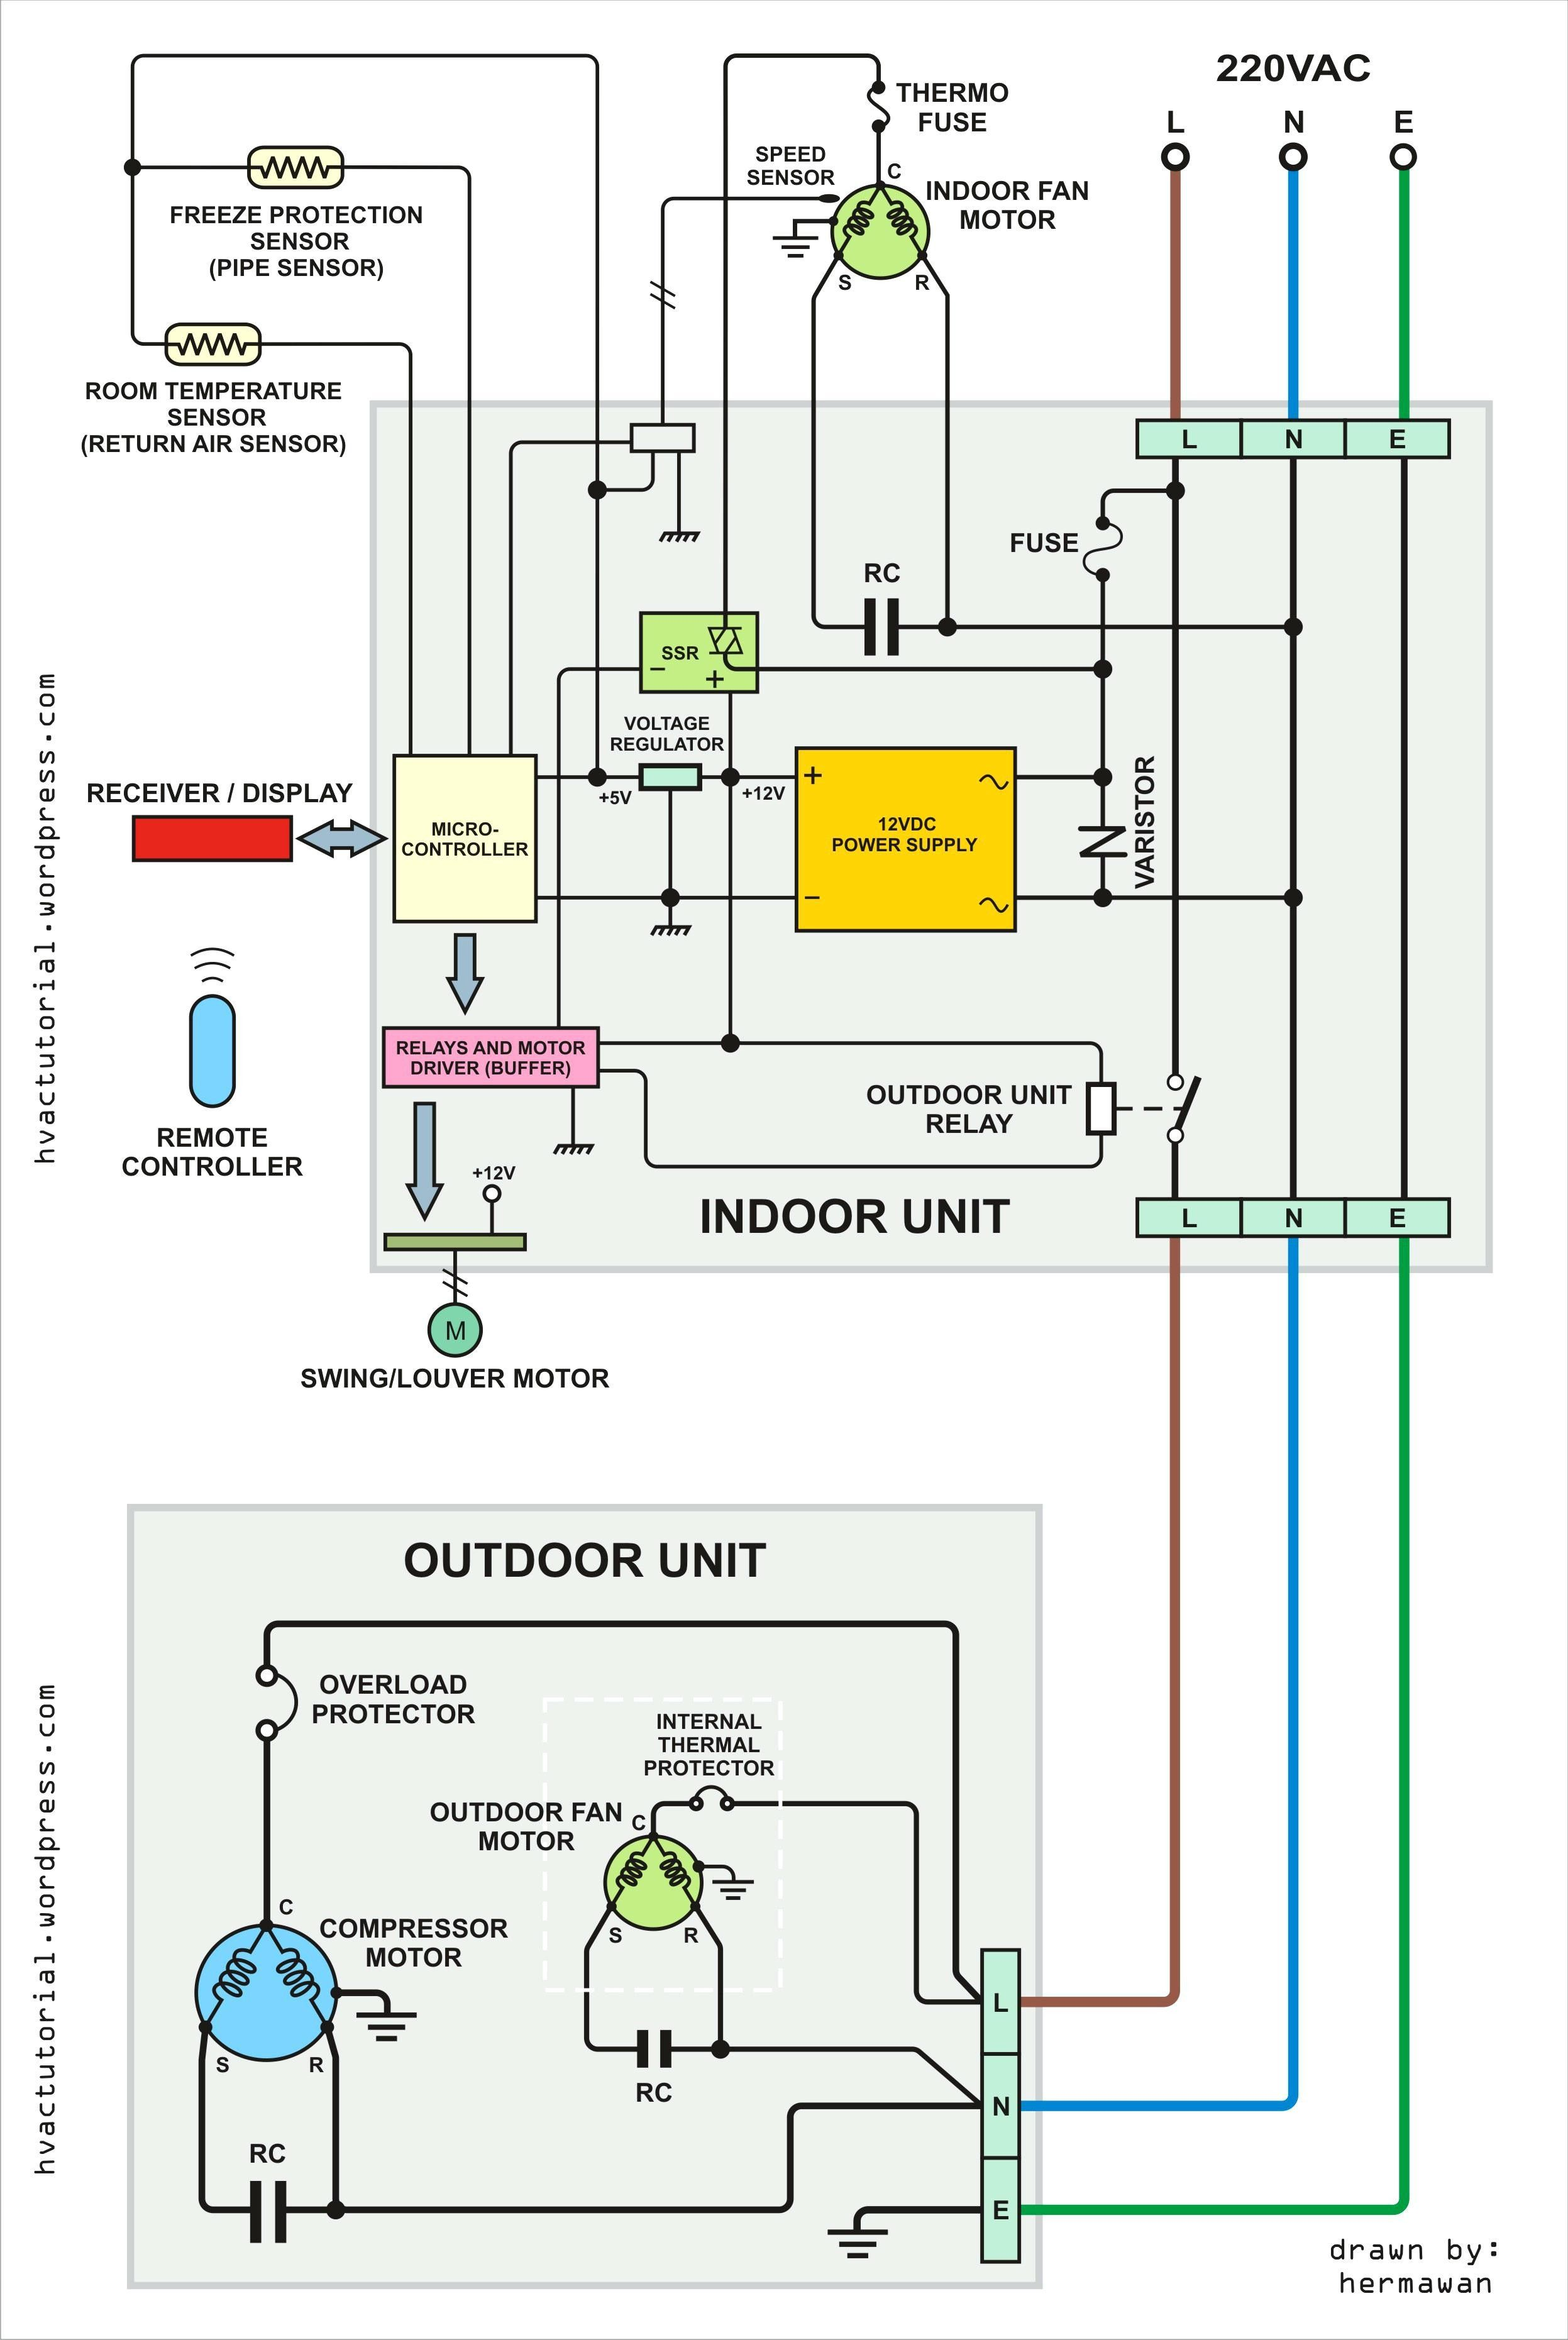 DIAGRAM] Pump Amana Diagram Wiring Ptac Heat FULL Version HD Quality Ptac  Heat - DIAGRAMADORES.FEDERPERITI.IT | Pump Amana Diagram Wiring Ptac Heat |  | diagramadores.federperiti.it